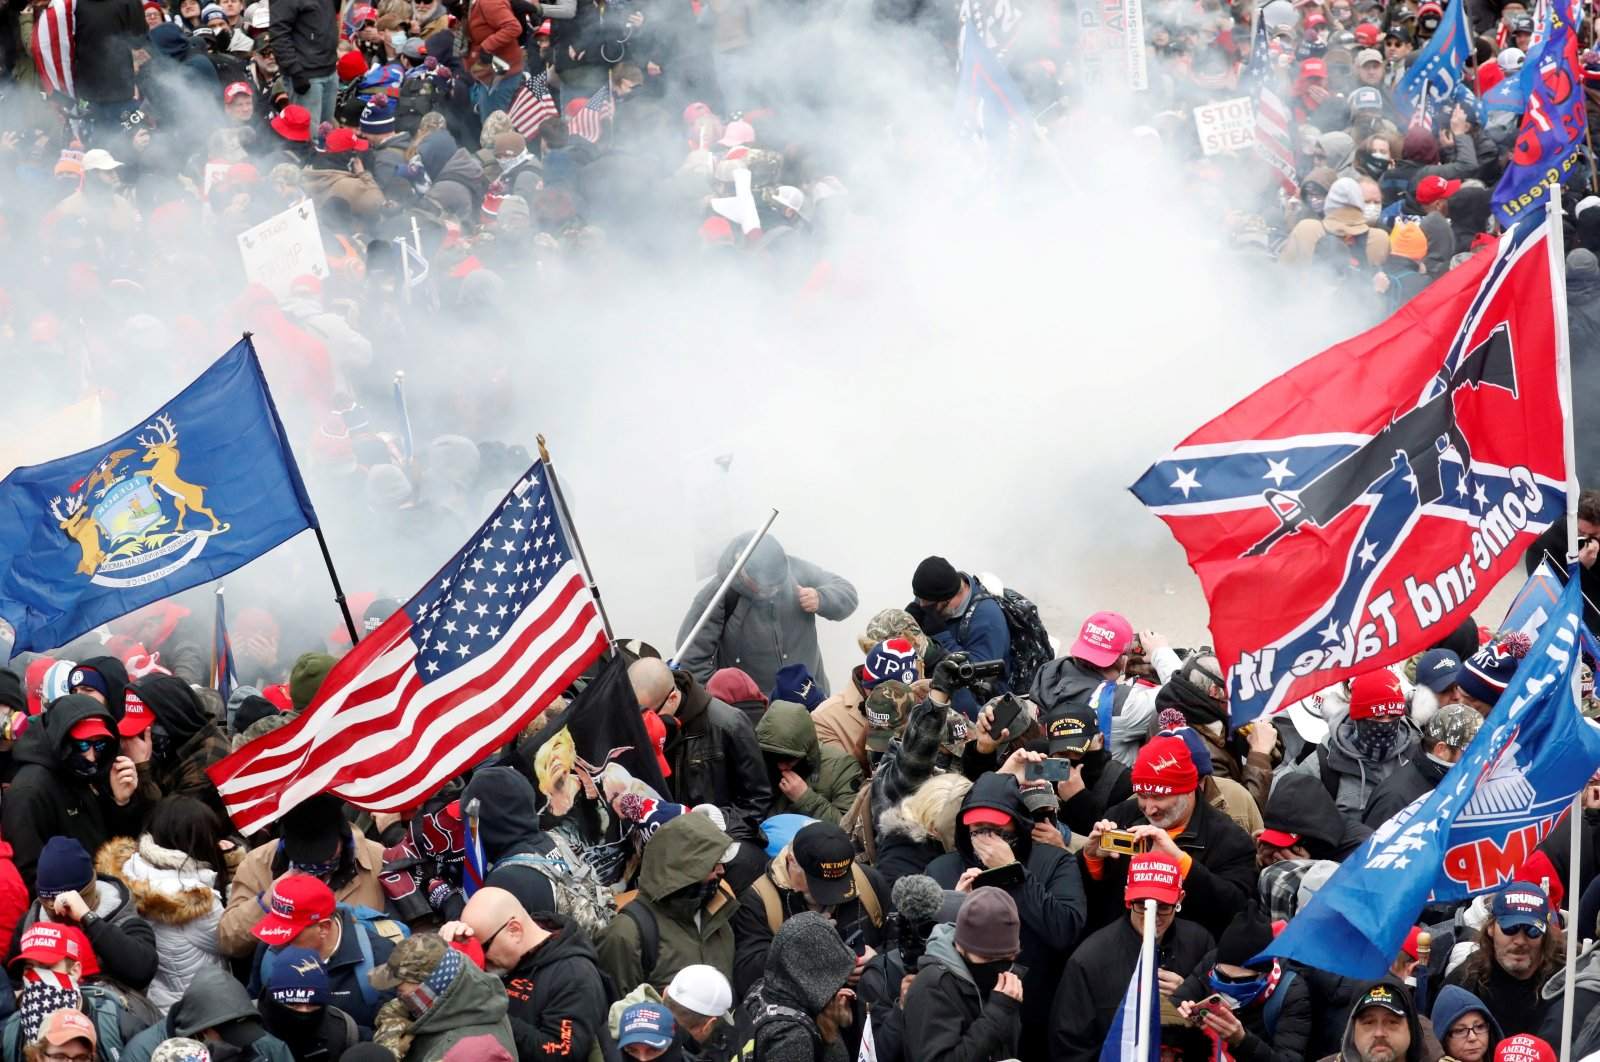 Tear gas is released into a crowd of protesters at U.S. Congress, at the U.S. Capitol Building in Washington, U.S, Jan. 6, 2021. (Reuters Photo)